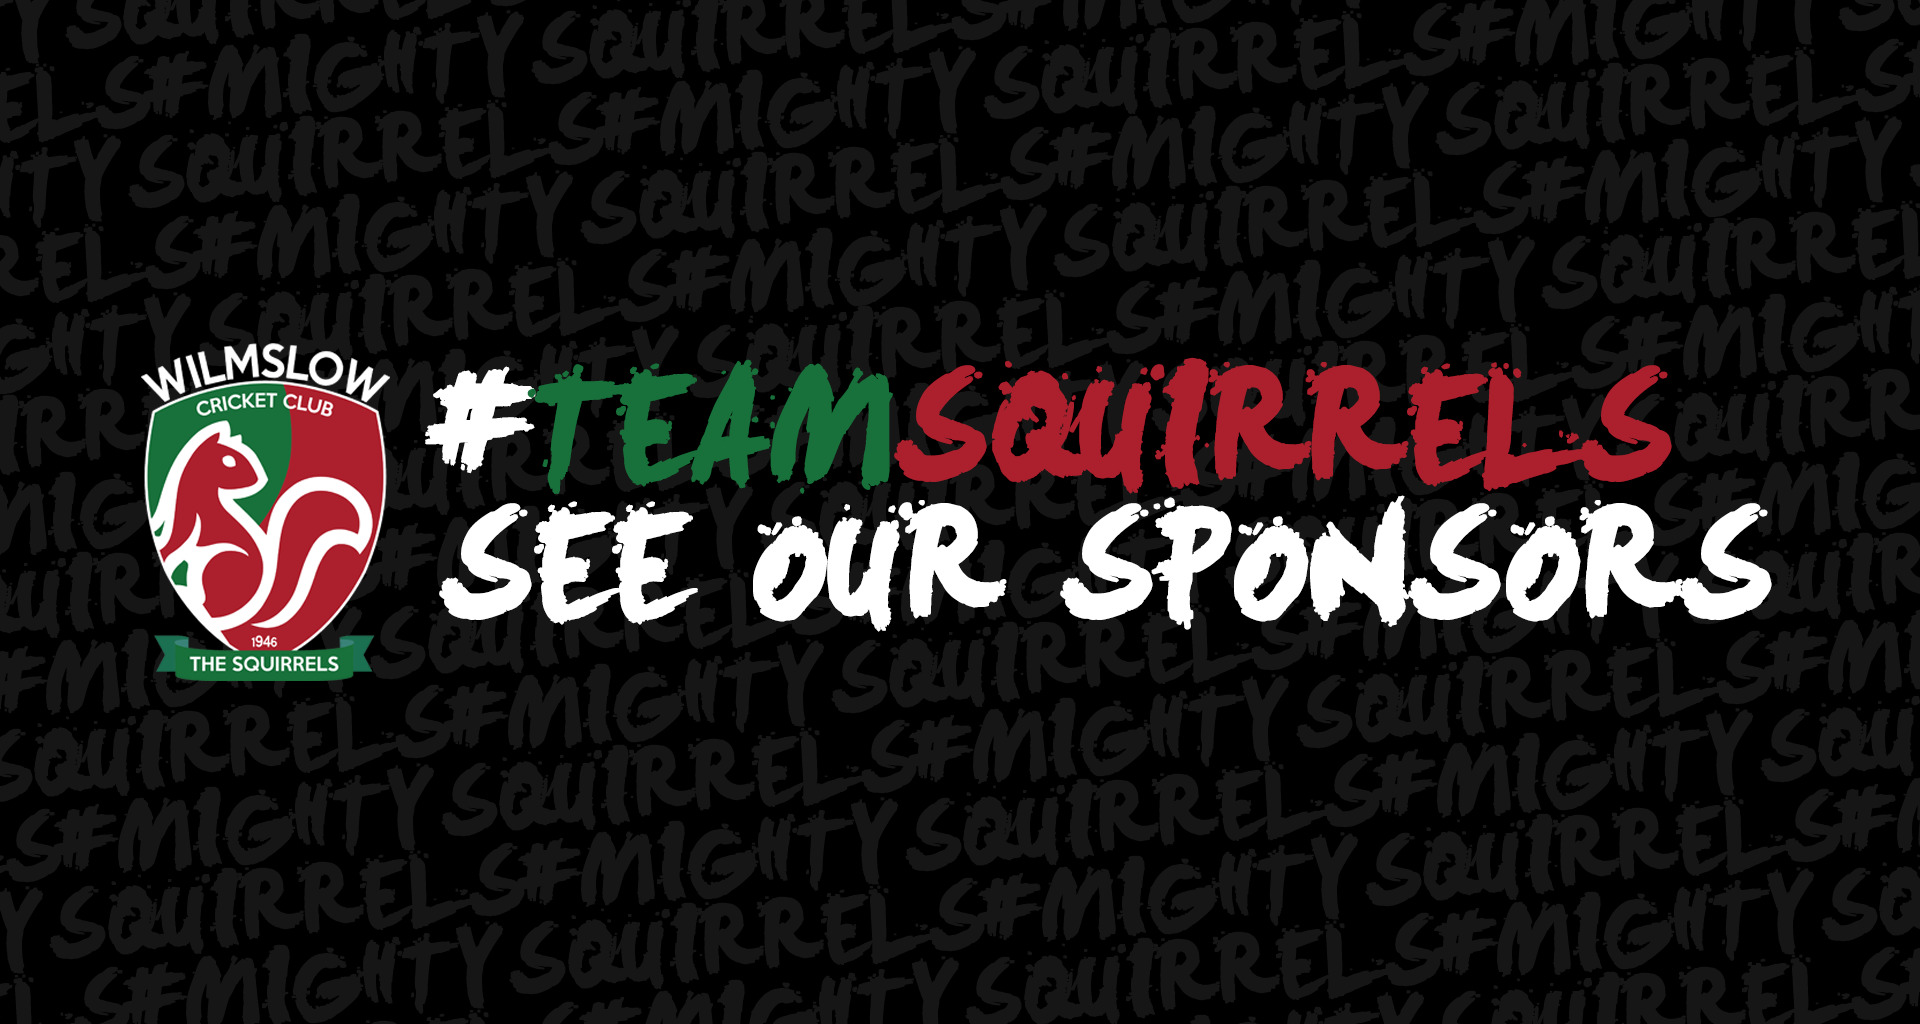 https://wilmslowcricketclub.com/wp-content/uploads/2020/05/TeamSquirrels-See-Our-Sponsors.jpg